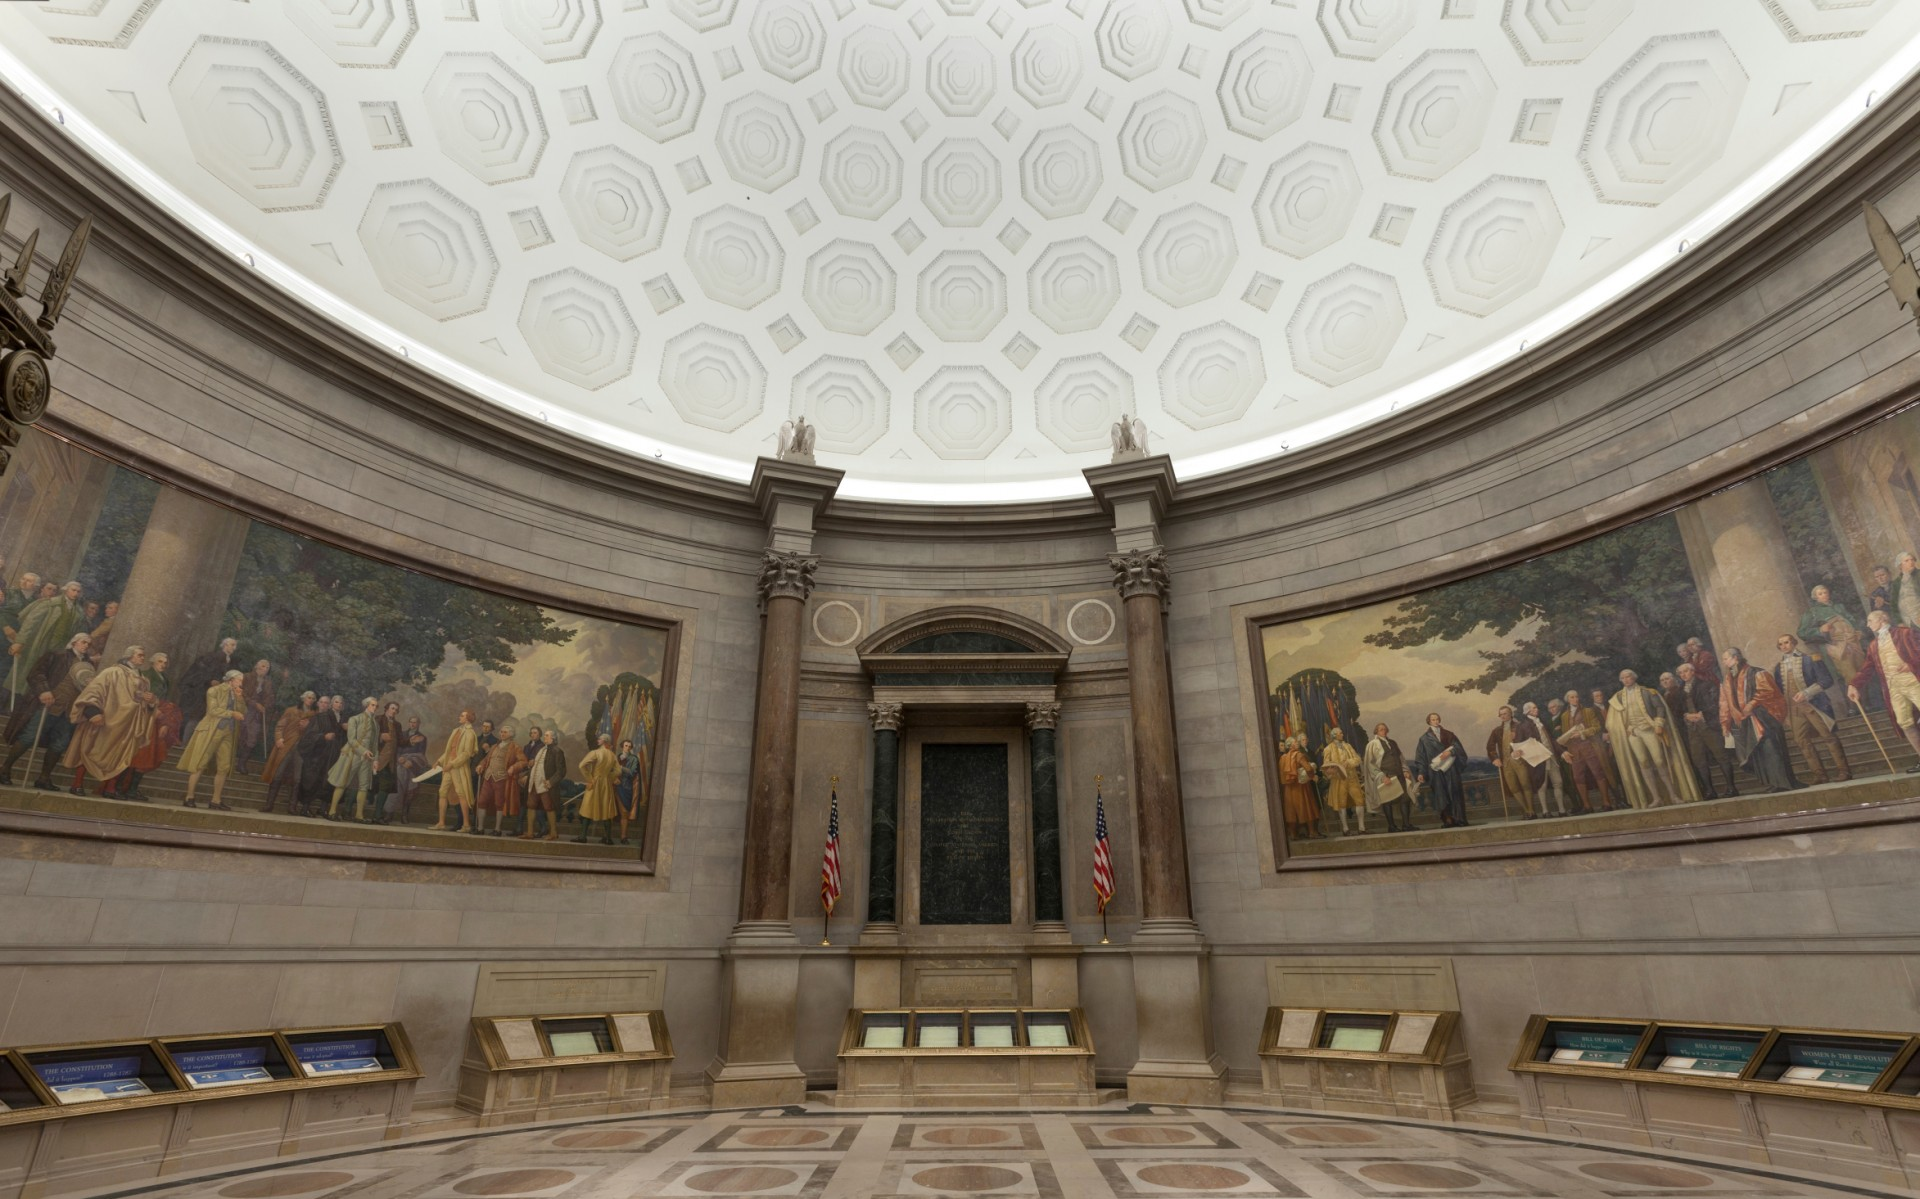 The Rotunda for the Charters of Freedom is home to the Constitution, Bill of Rights and Declaration of Independence.